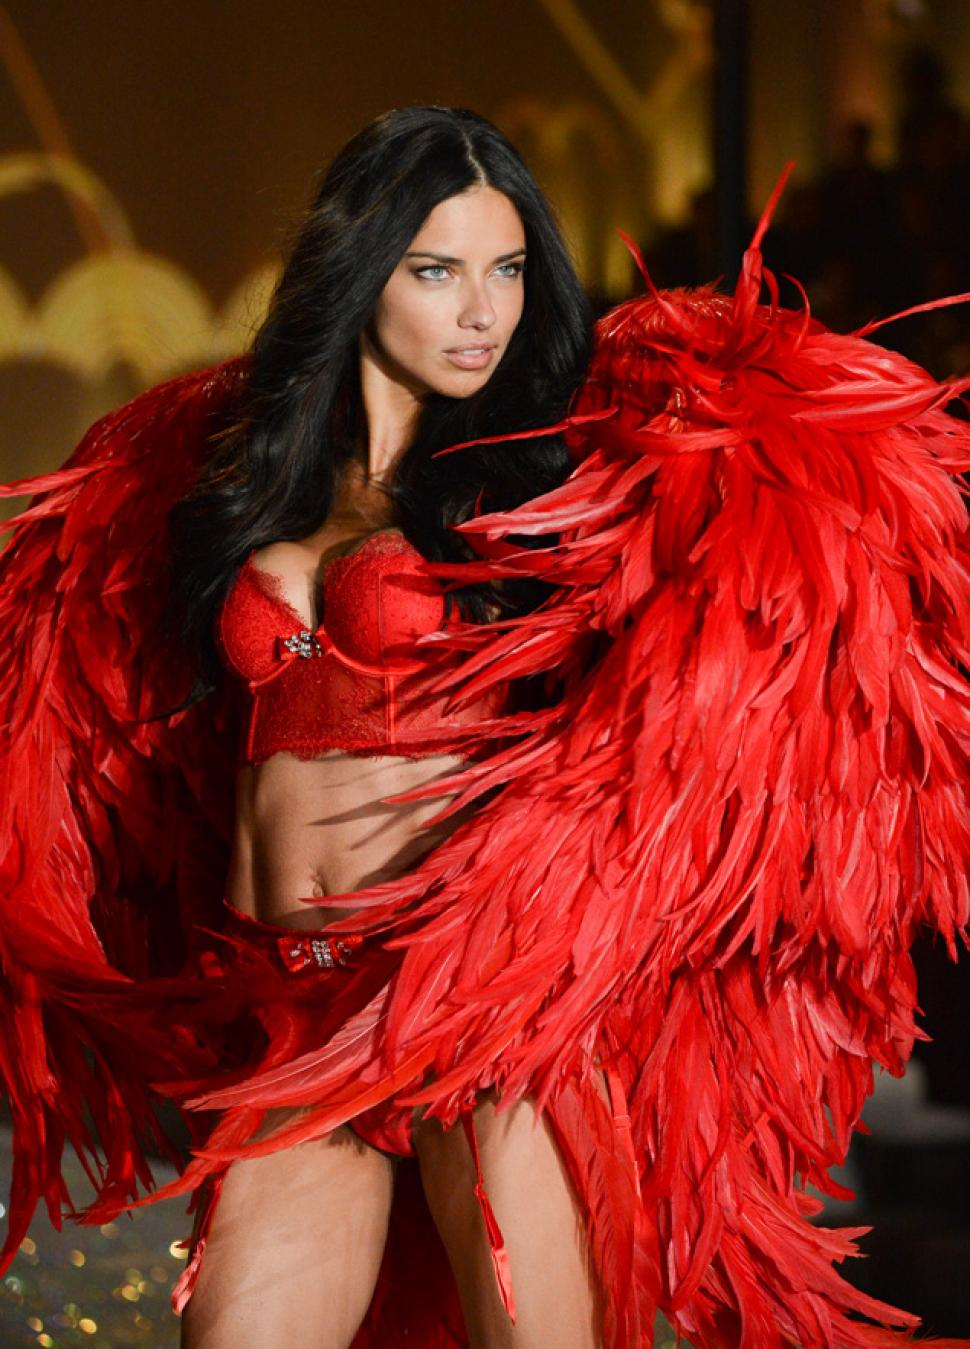 15 Things You Didn't Know About Victoria's Secret | Adriana Lima Adrian Lima, Victoria's Secret Fashion Show, 2013